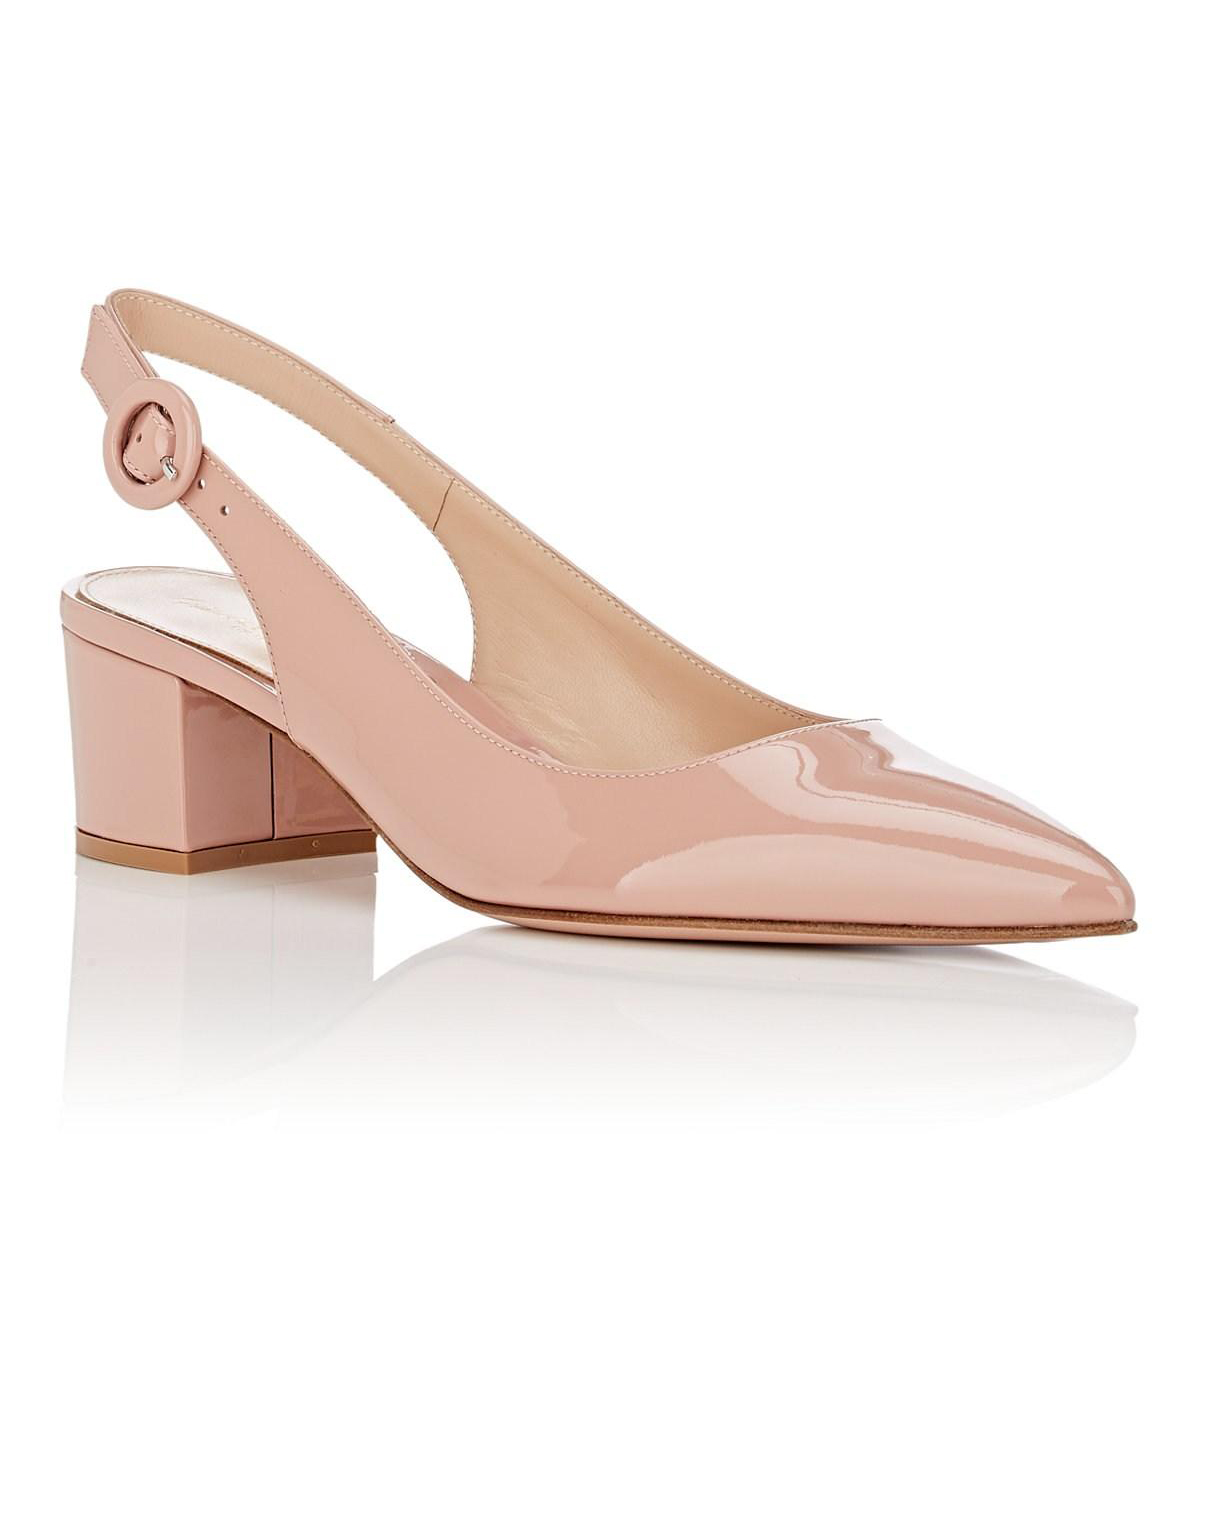 outdoor wedding shoes patent leather sling-back pumps